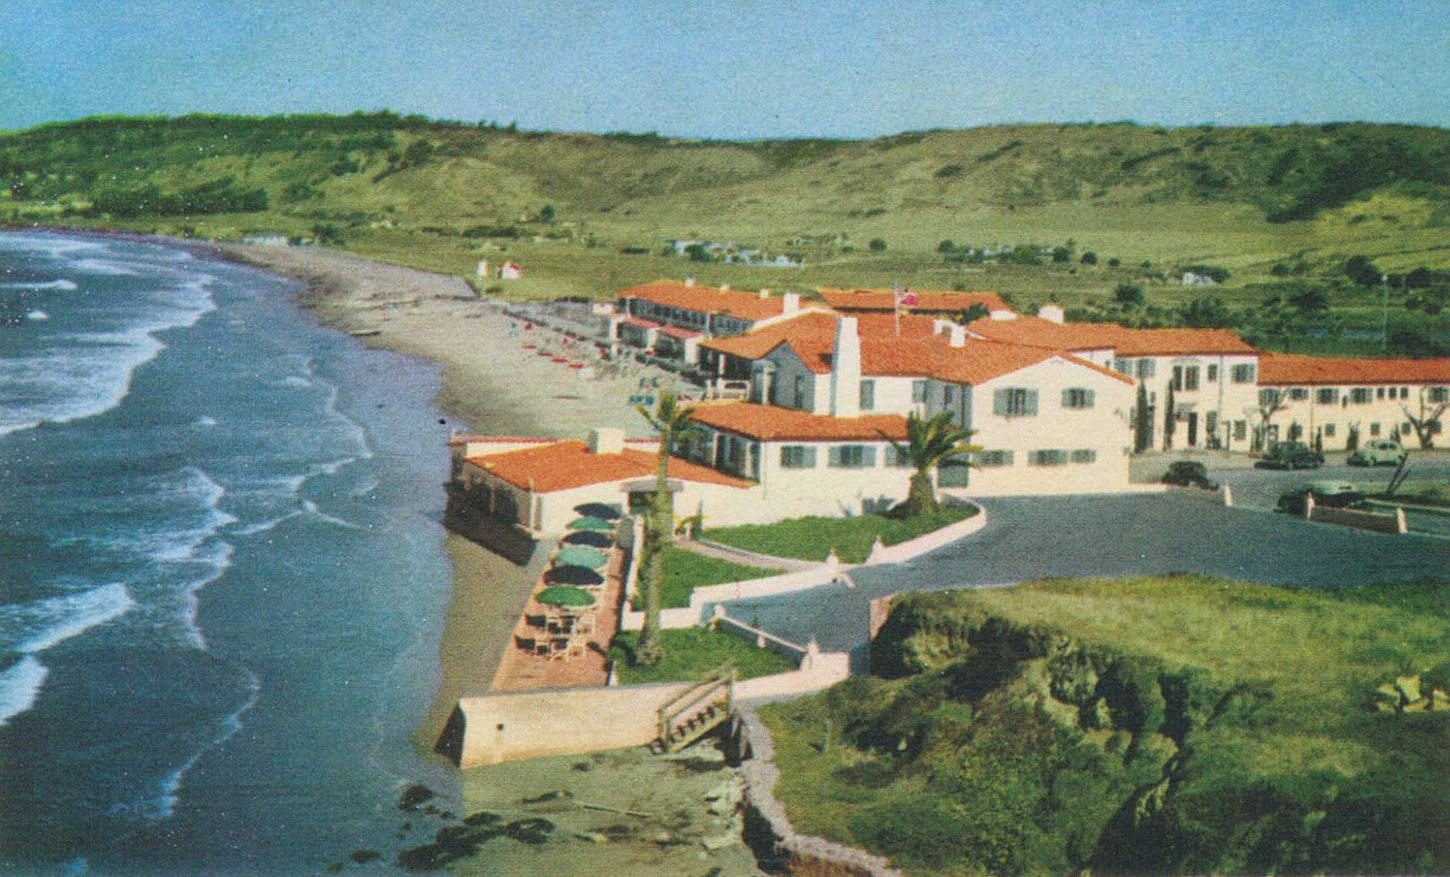 View of Marine Room and La Jolla Beach Club apartments, late 1930s.